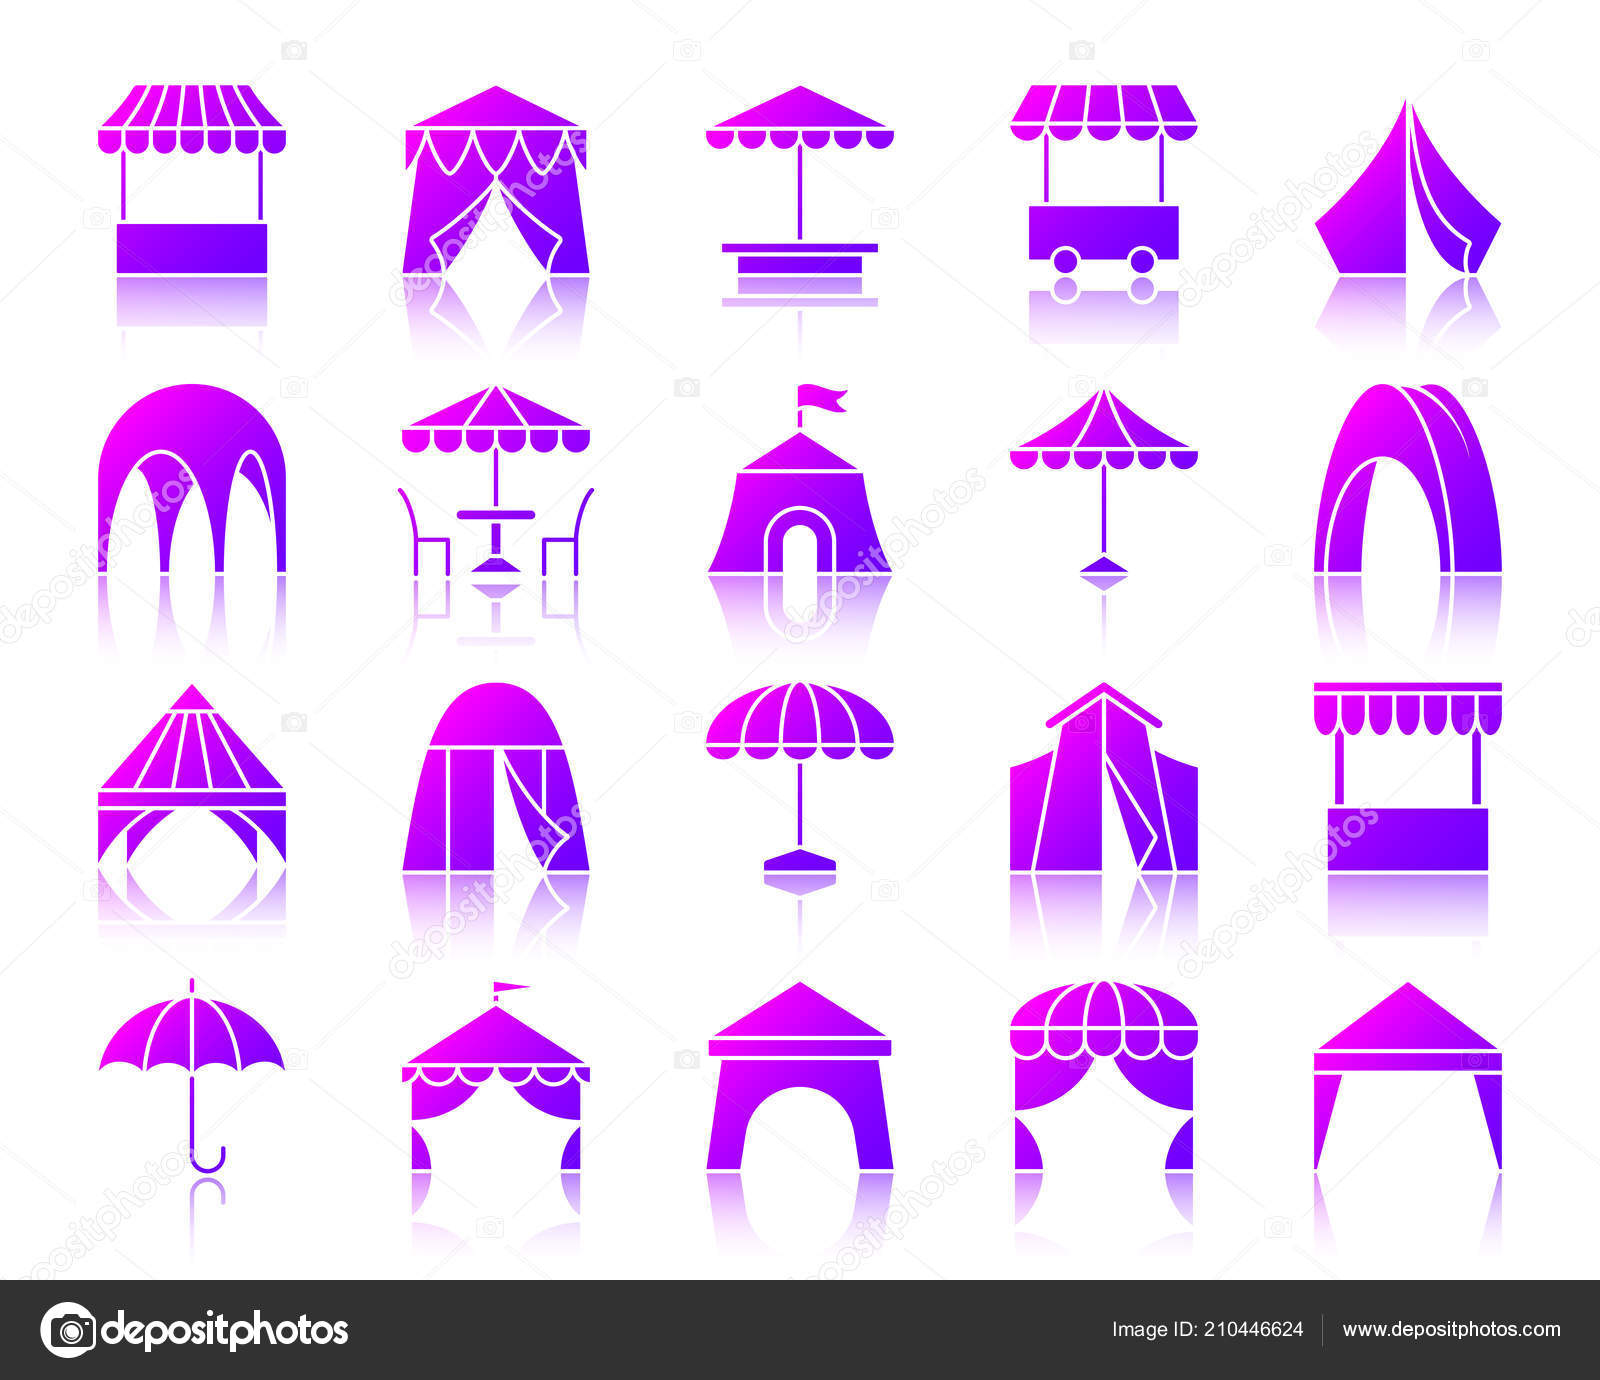 White Umbrella Marquees Tent Silhouette Icons Set Reflection Violet Sign Kit Umbrella